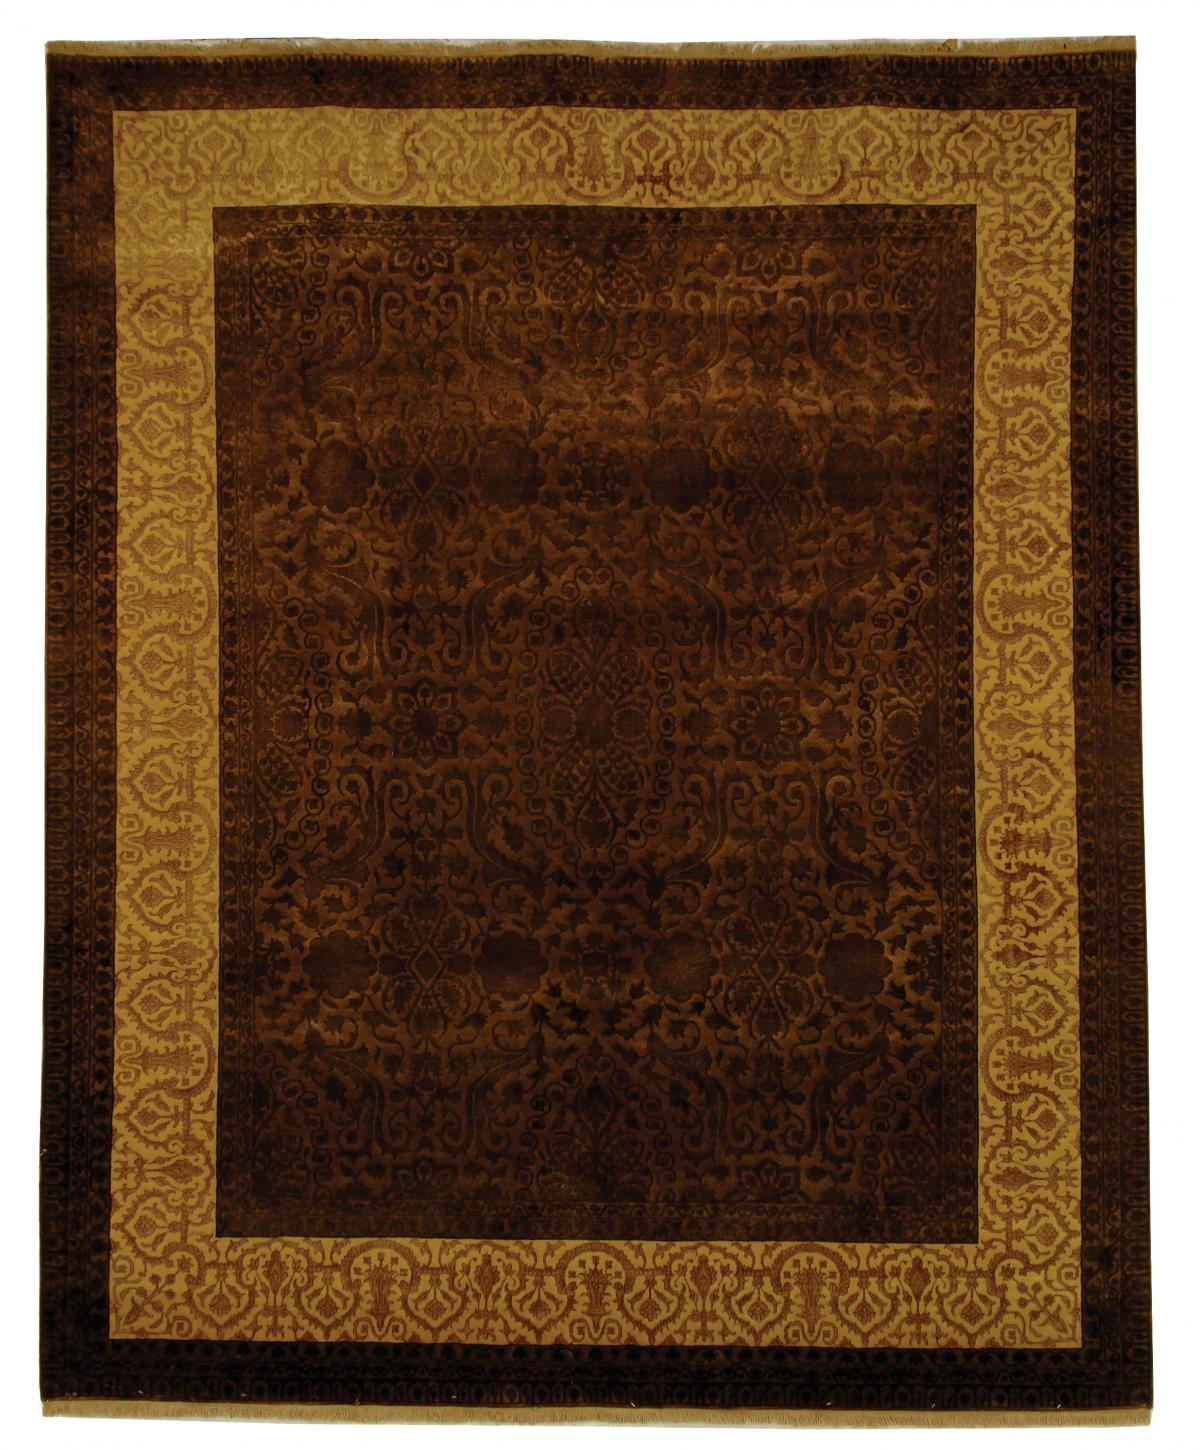 Area Rugs From India: Jewel Of India Area Rugs By Safavieh